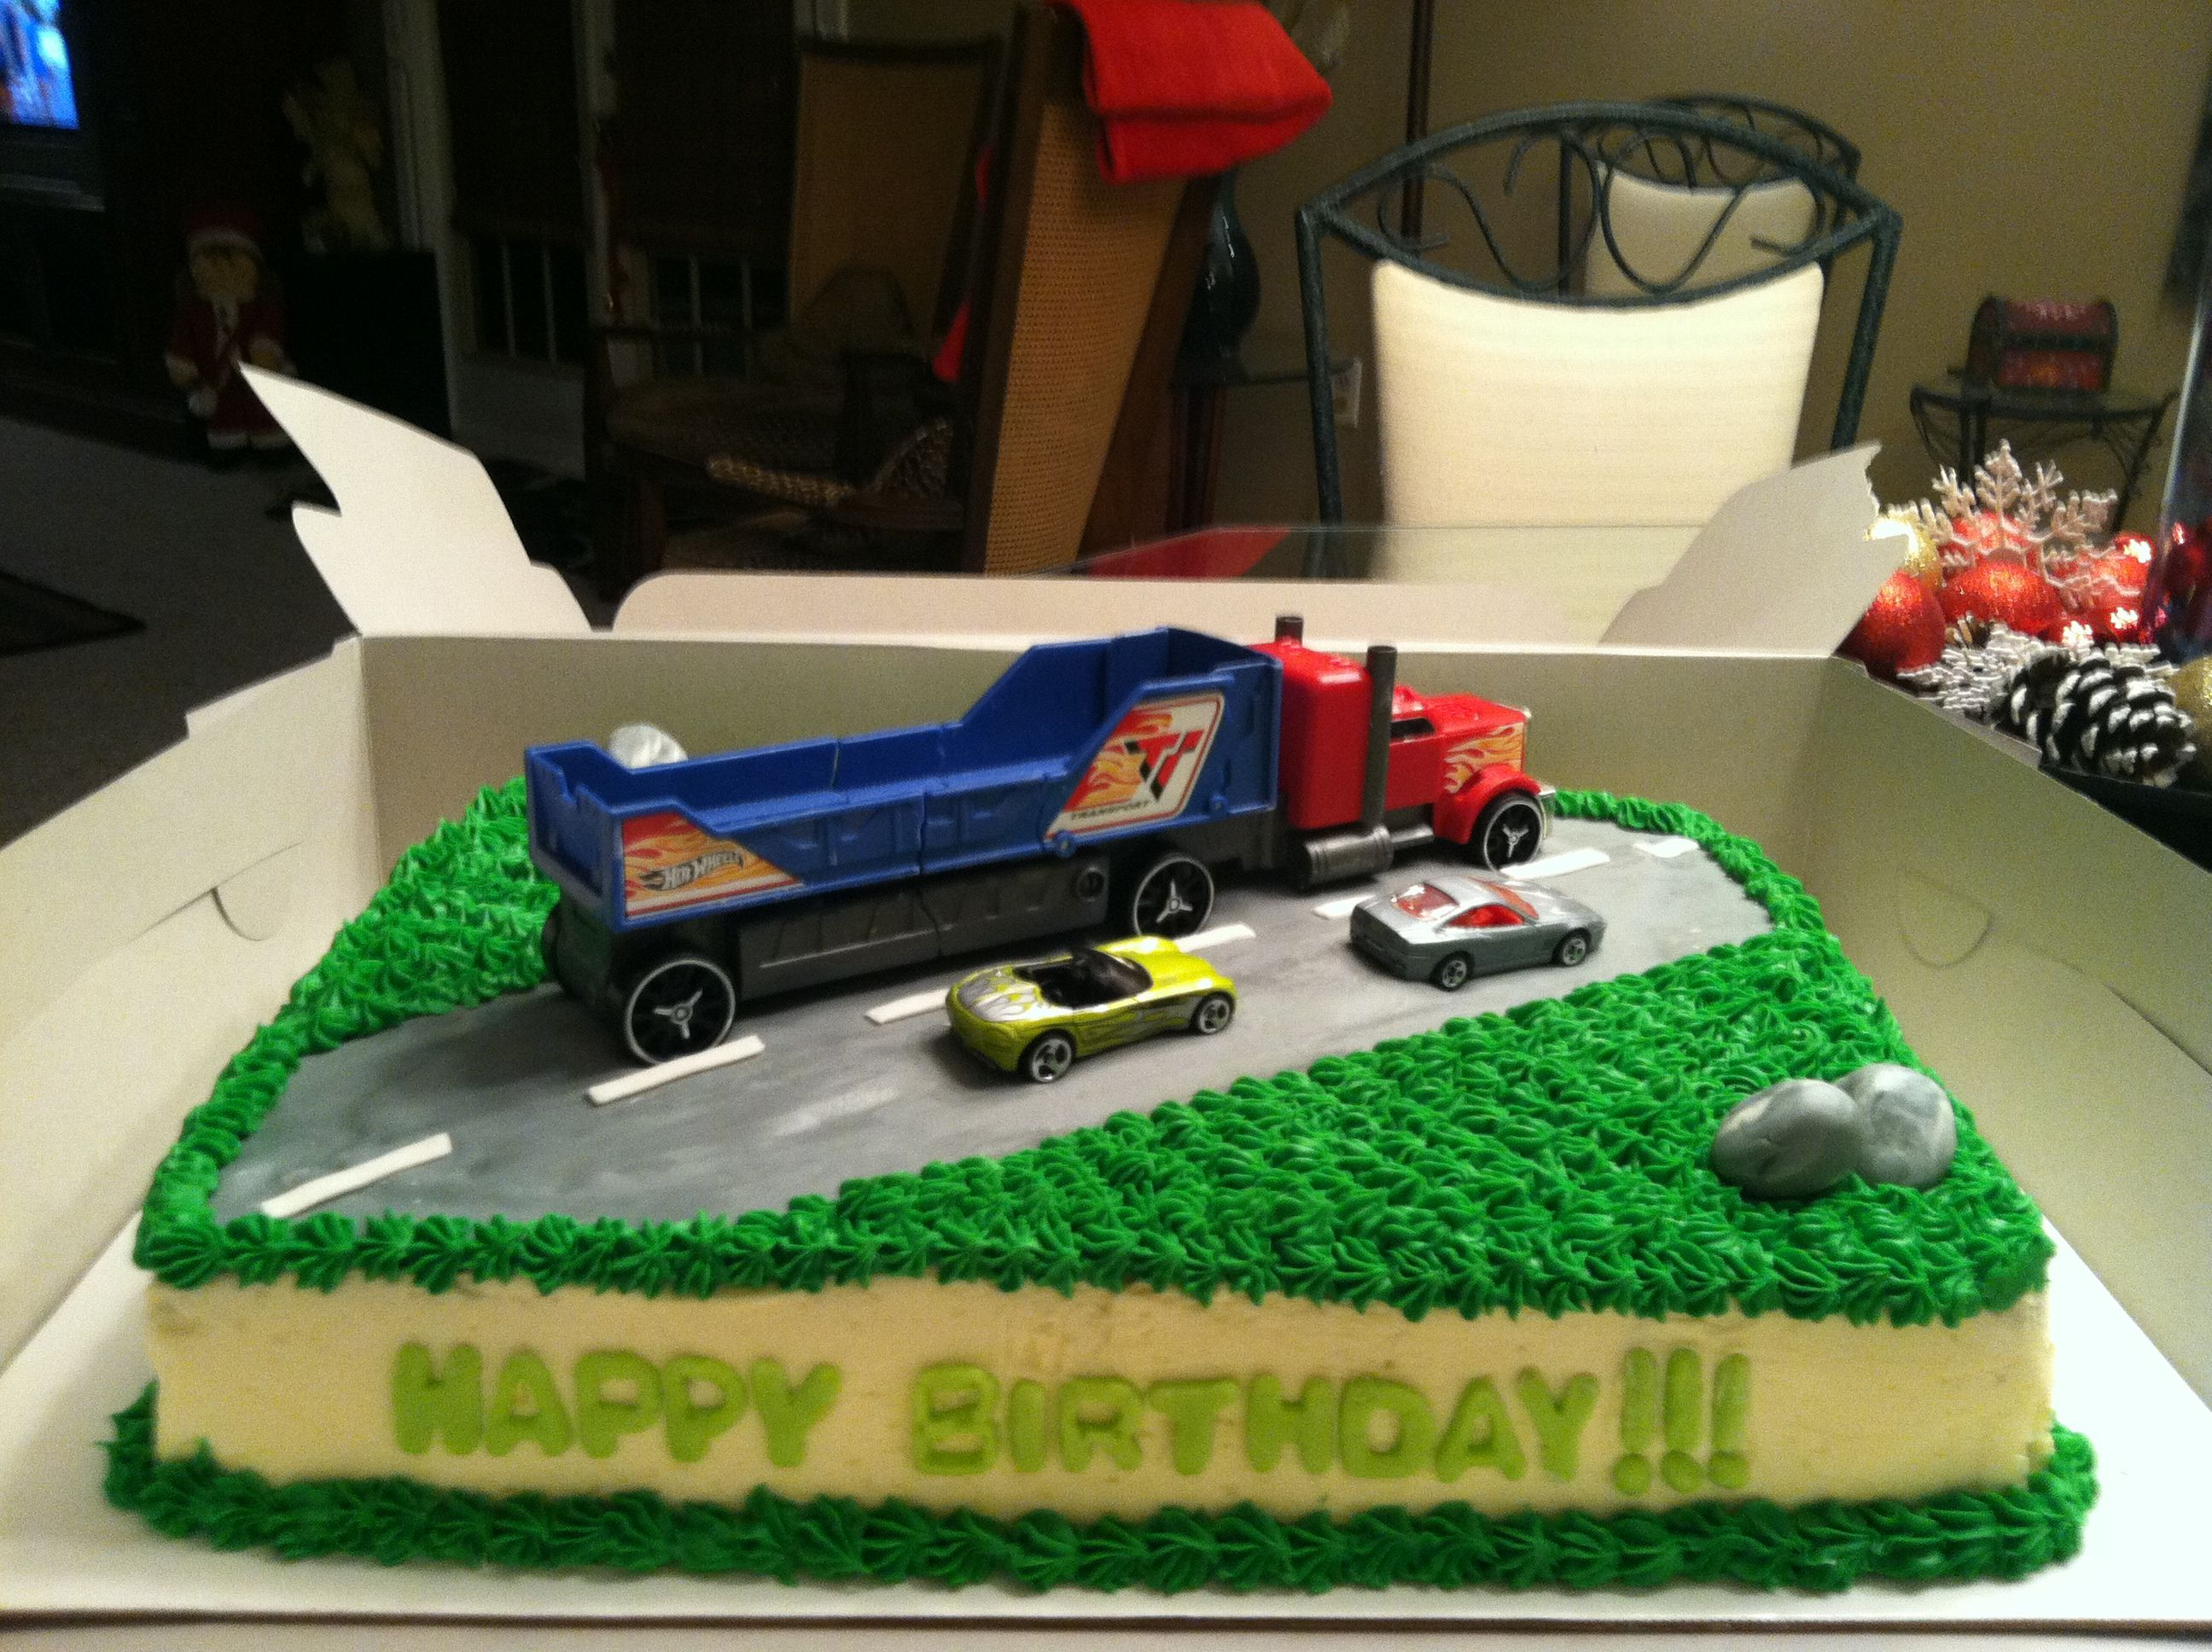 Astounding Semi Truck Cake Truck Birthday Cakes Happy Birthday Cake Funny Birthday Cards Online Alyptdamsfinfo